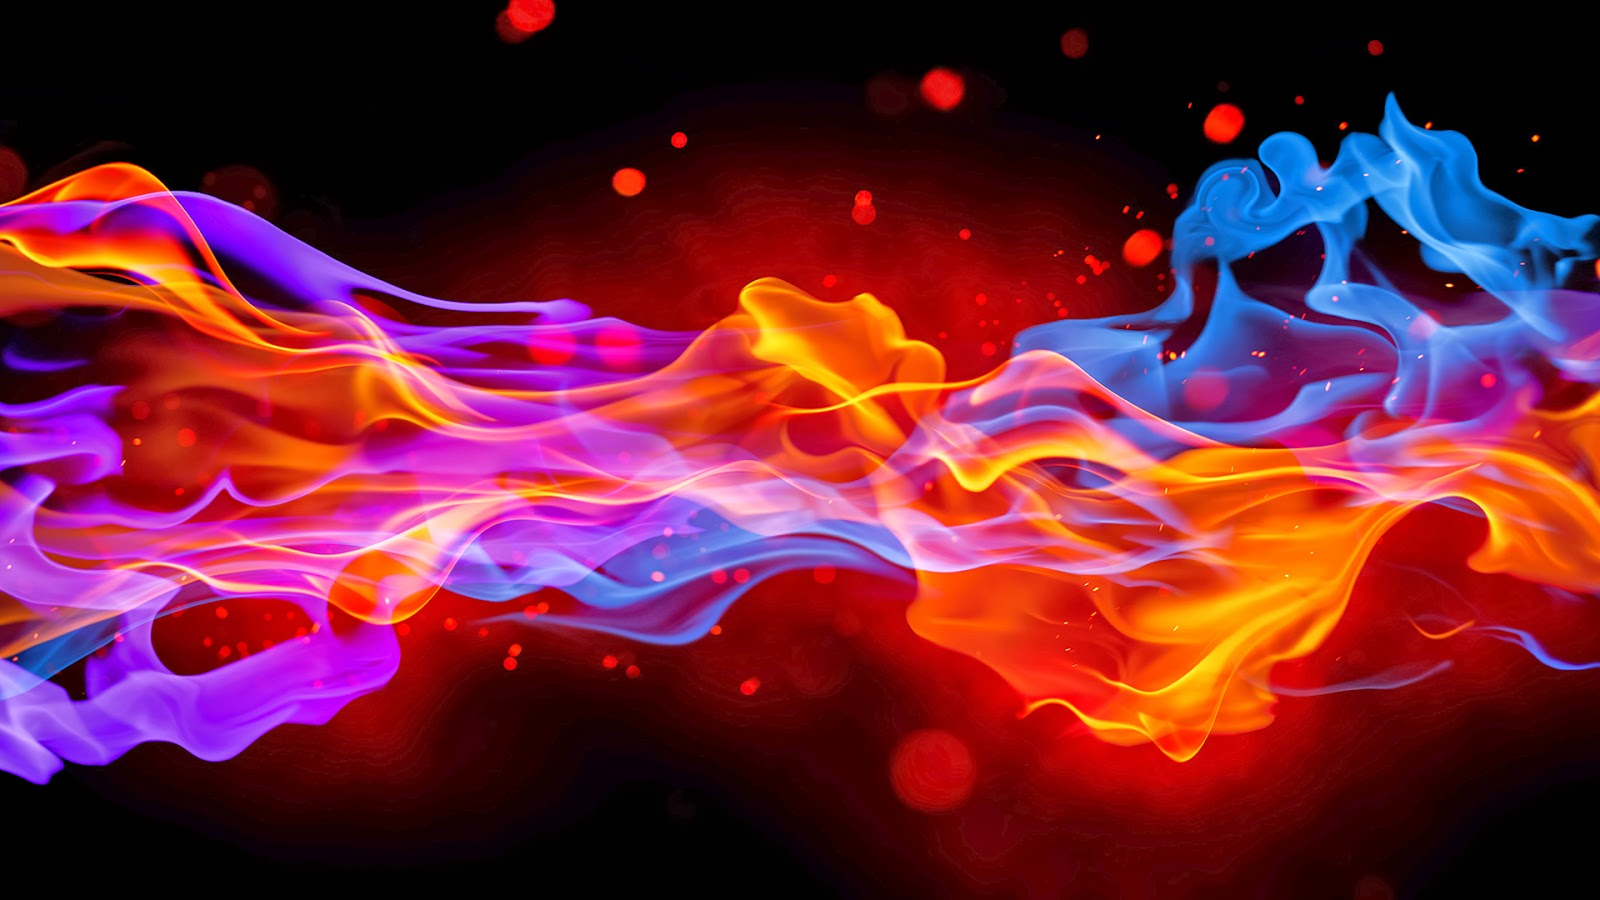 Blue And Red Fire Wallpaper 1600x900